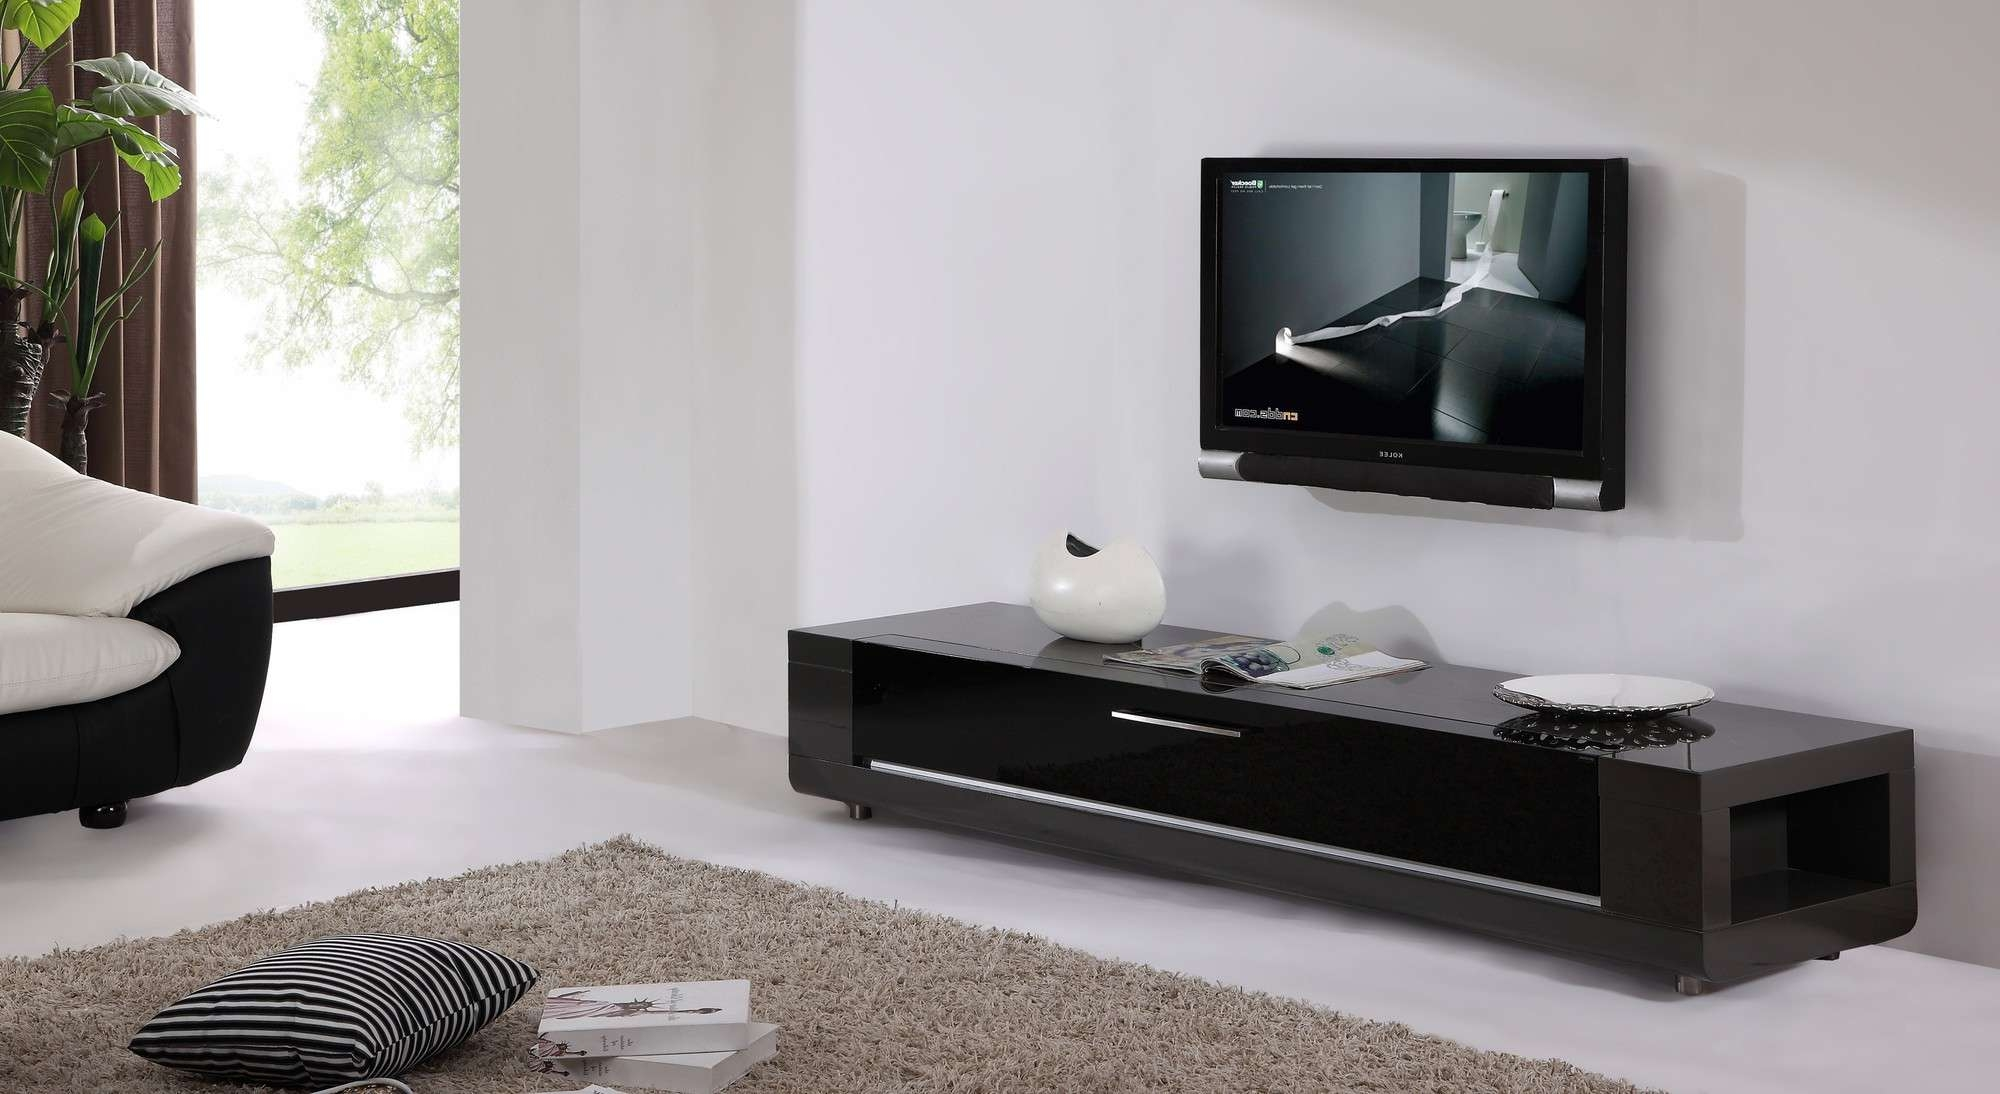 B Modern Editor Remix Tv Stand Modern Furnishings Throughout B Modern Tv Stands (View 7 of 15)